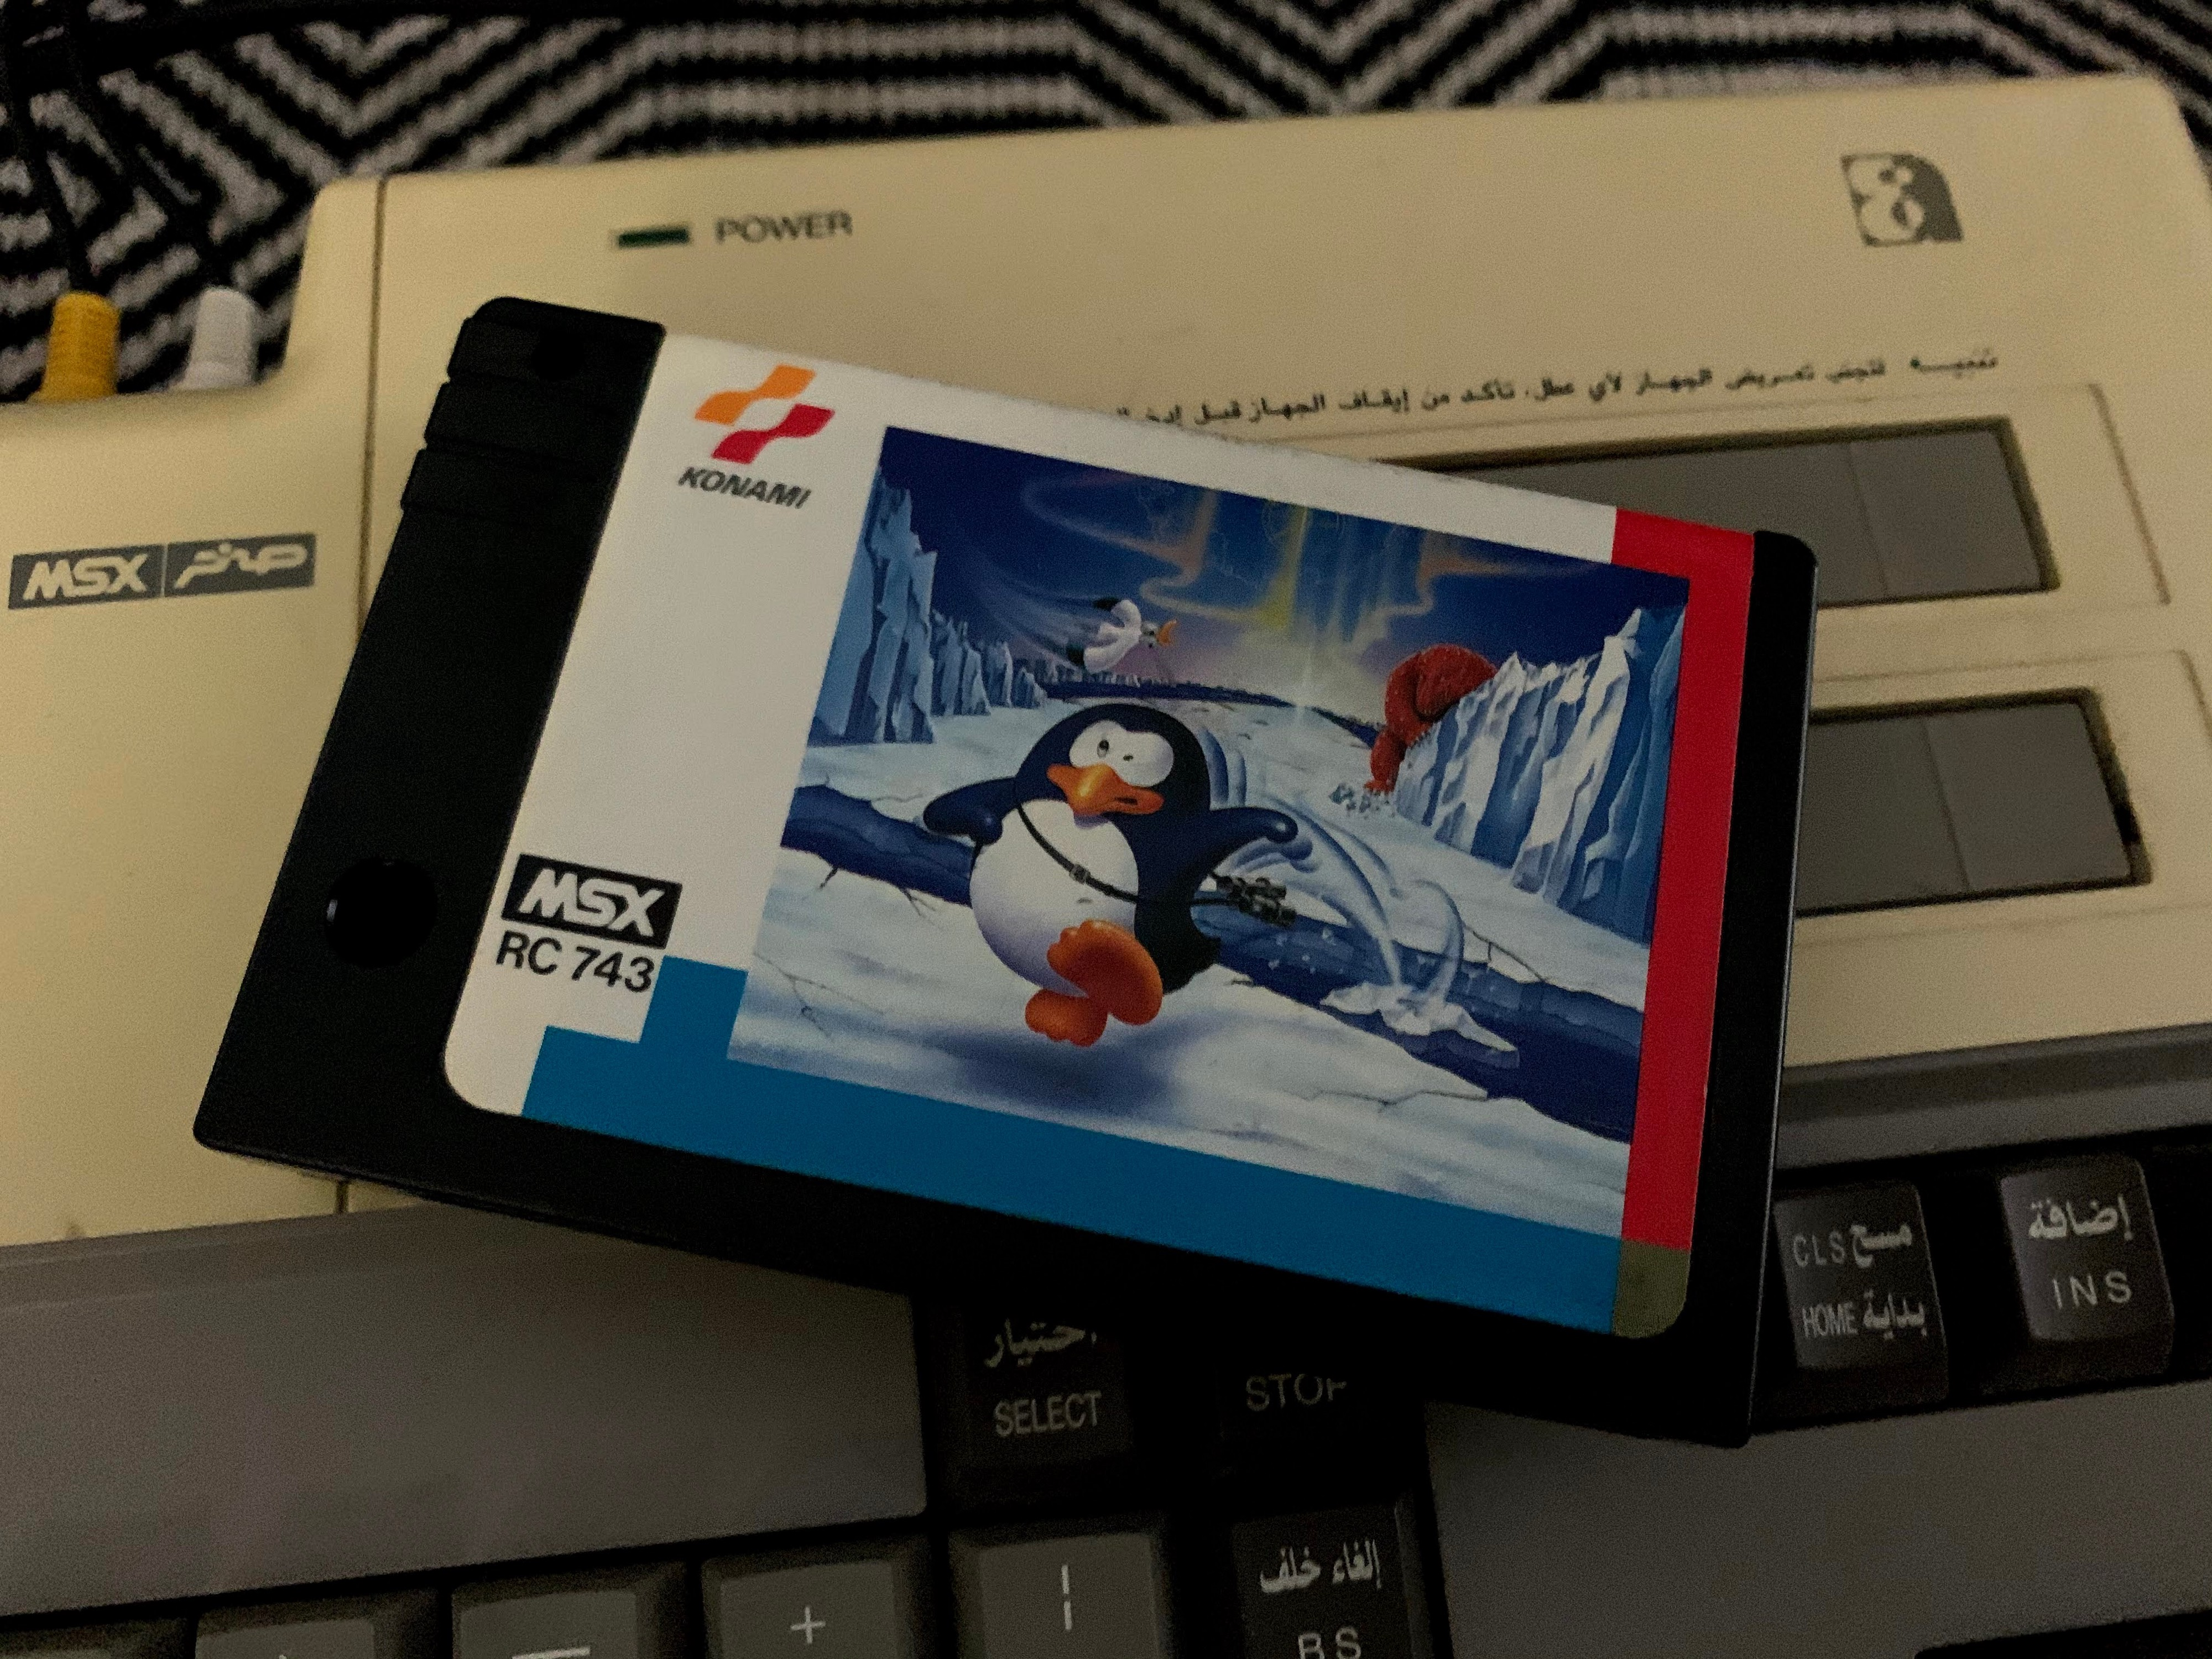 Penguin Adventure game cartridge on top of the Sakhr video game console.